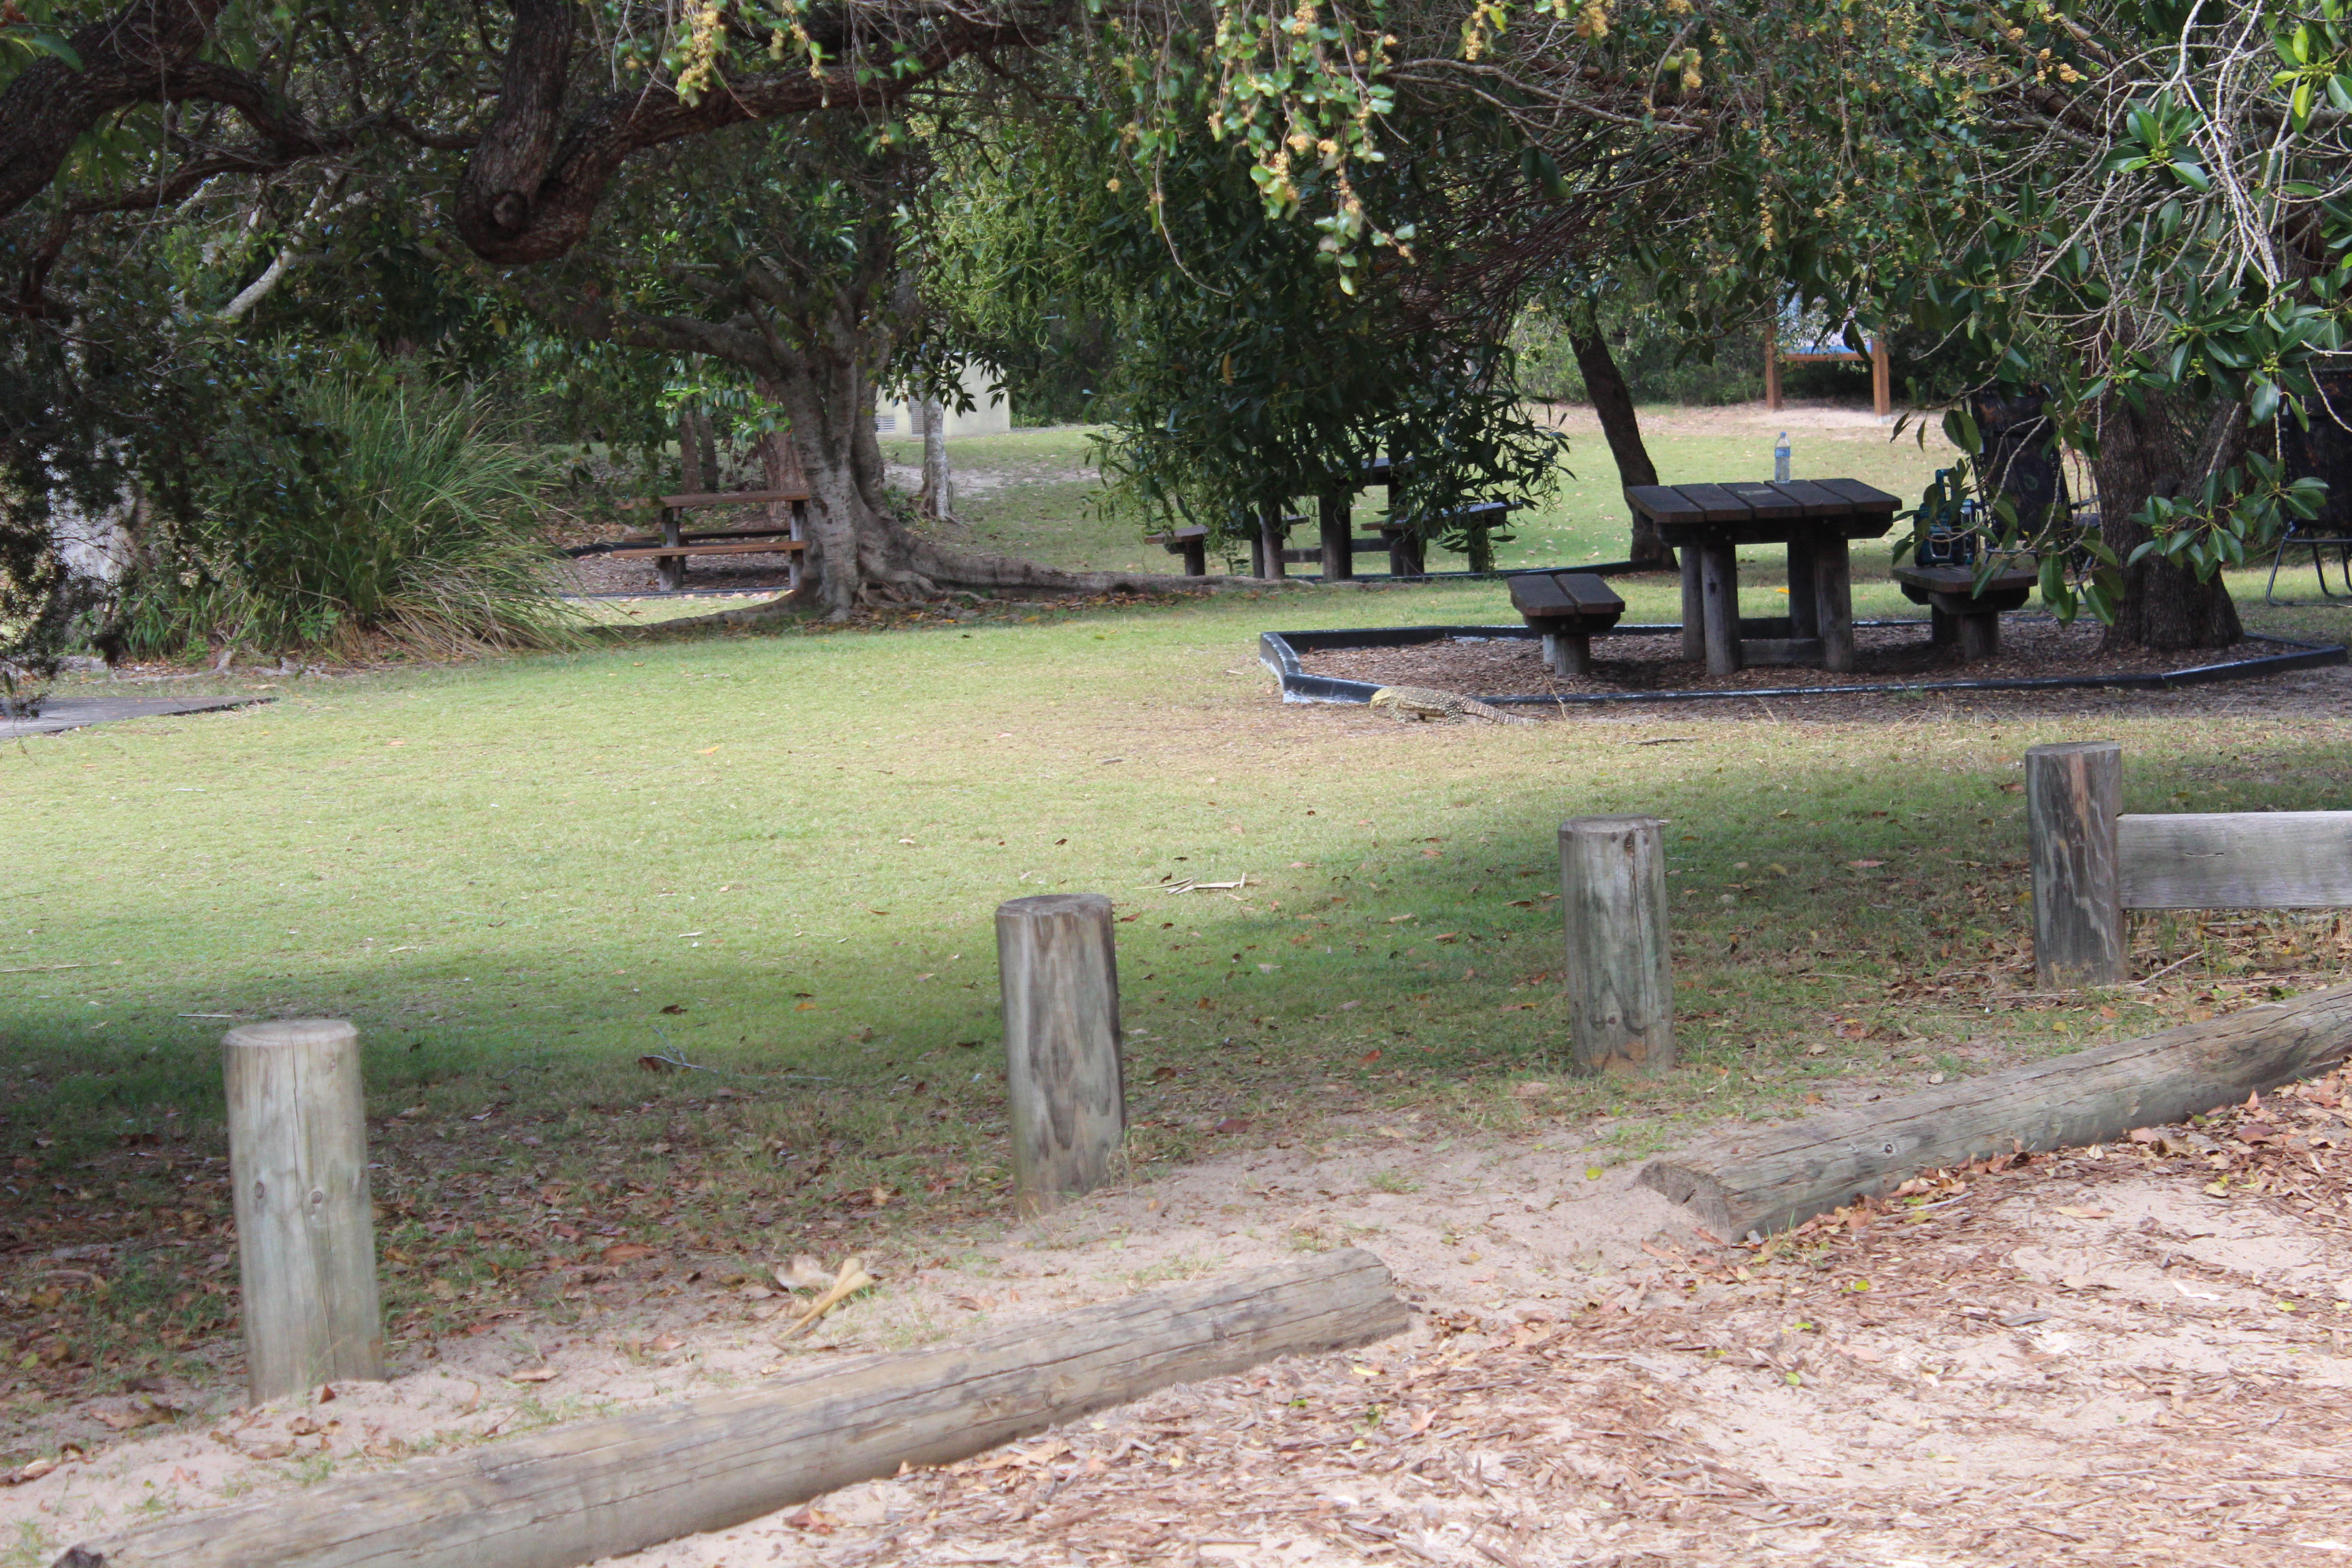 Freshwater Camp Grounds